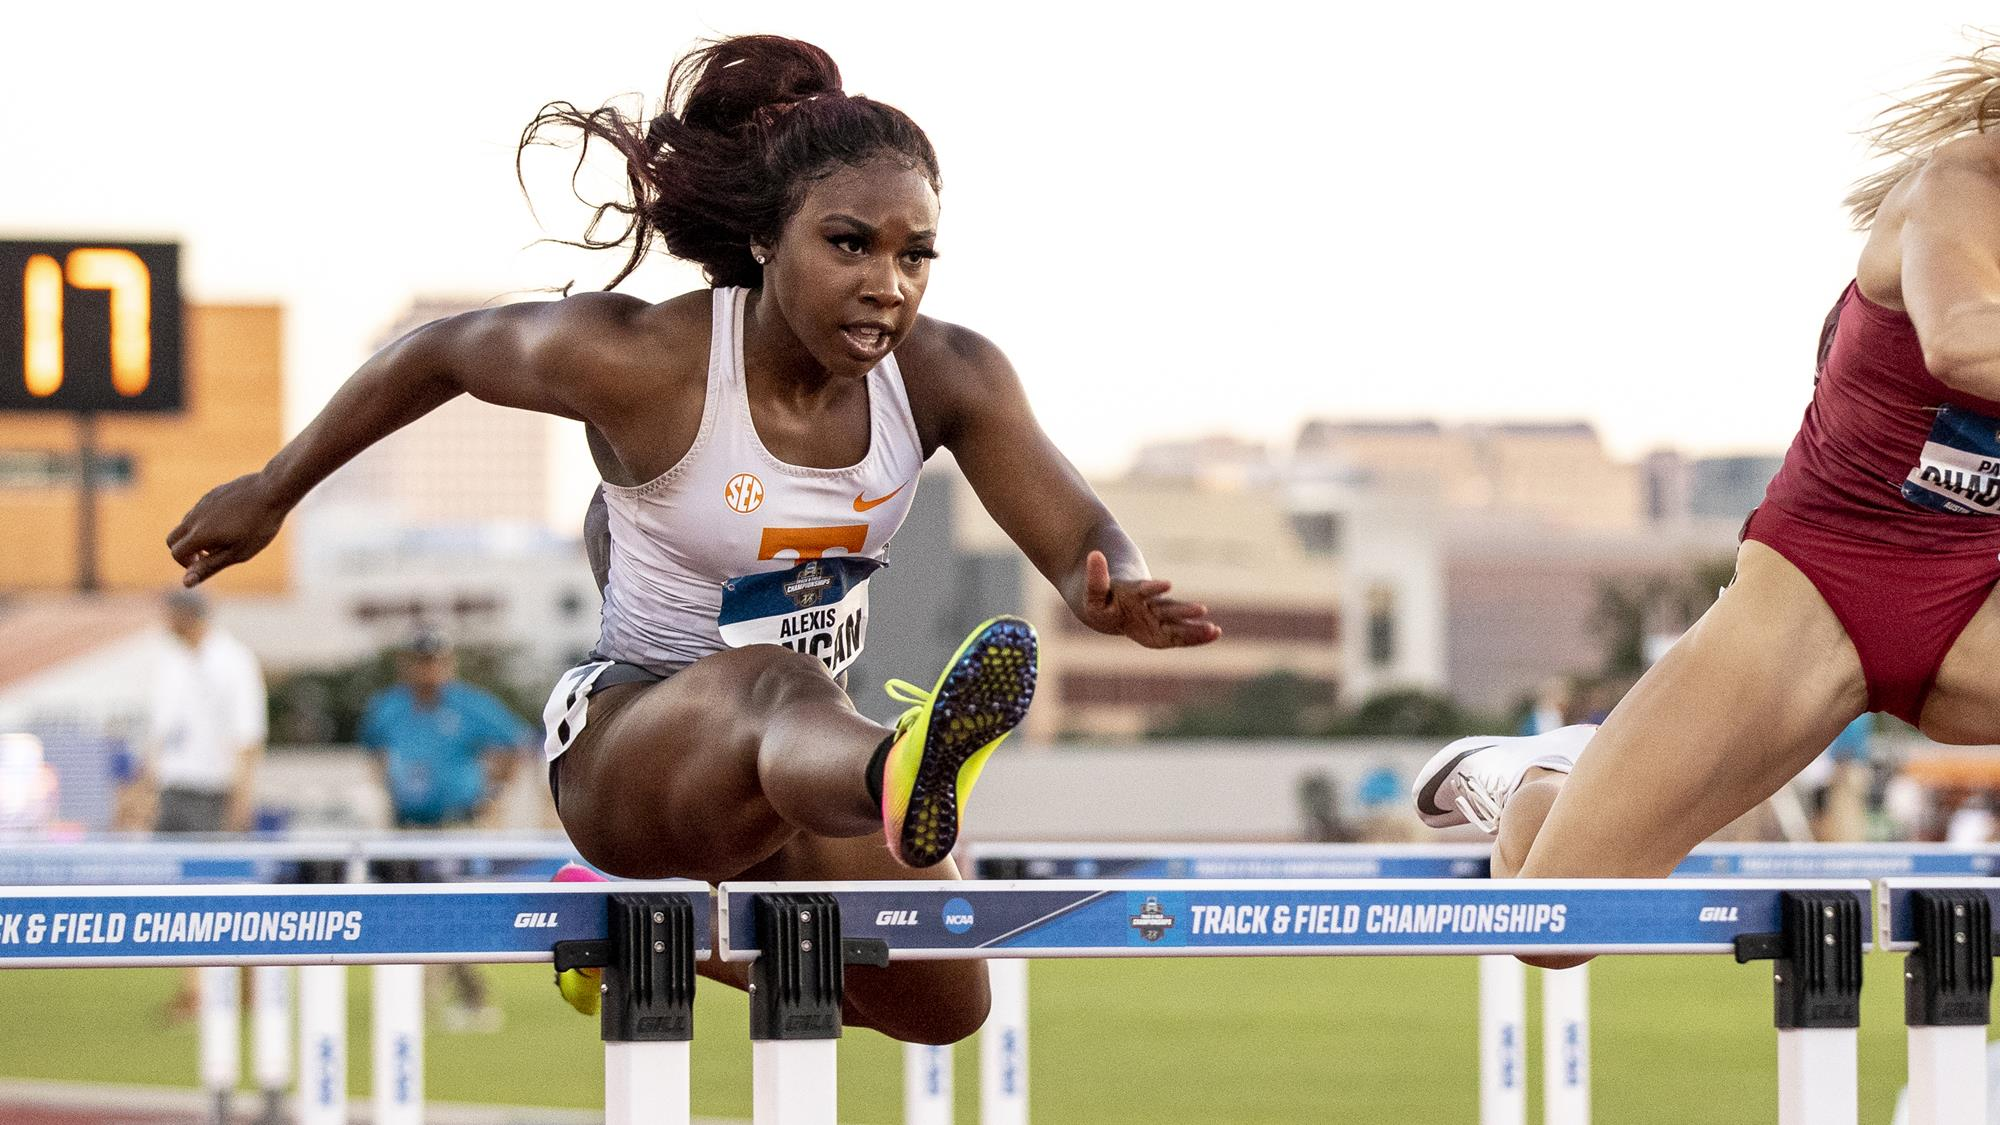 Alexis Texas Wikipedia alexis duncan - track & field / xc - university of tennessee